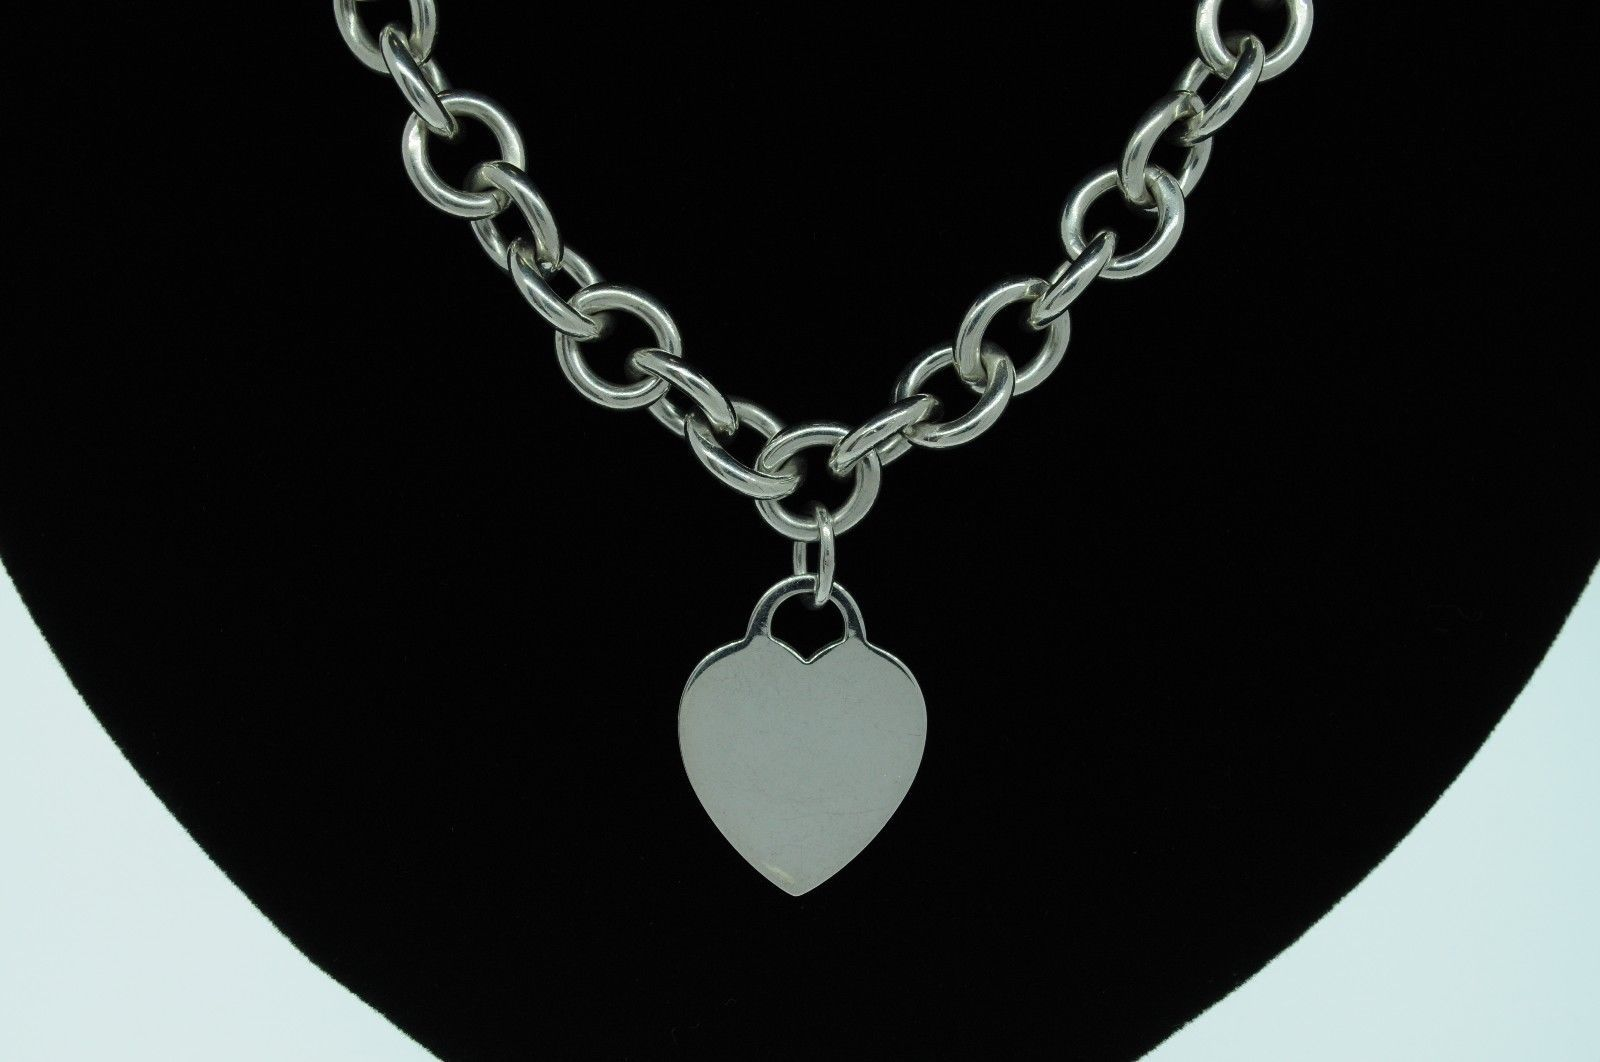 "TIFFANY & CO. Sterling Silver Heart Tag Charm Necklace (16"")"